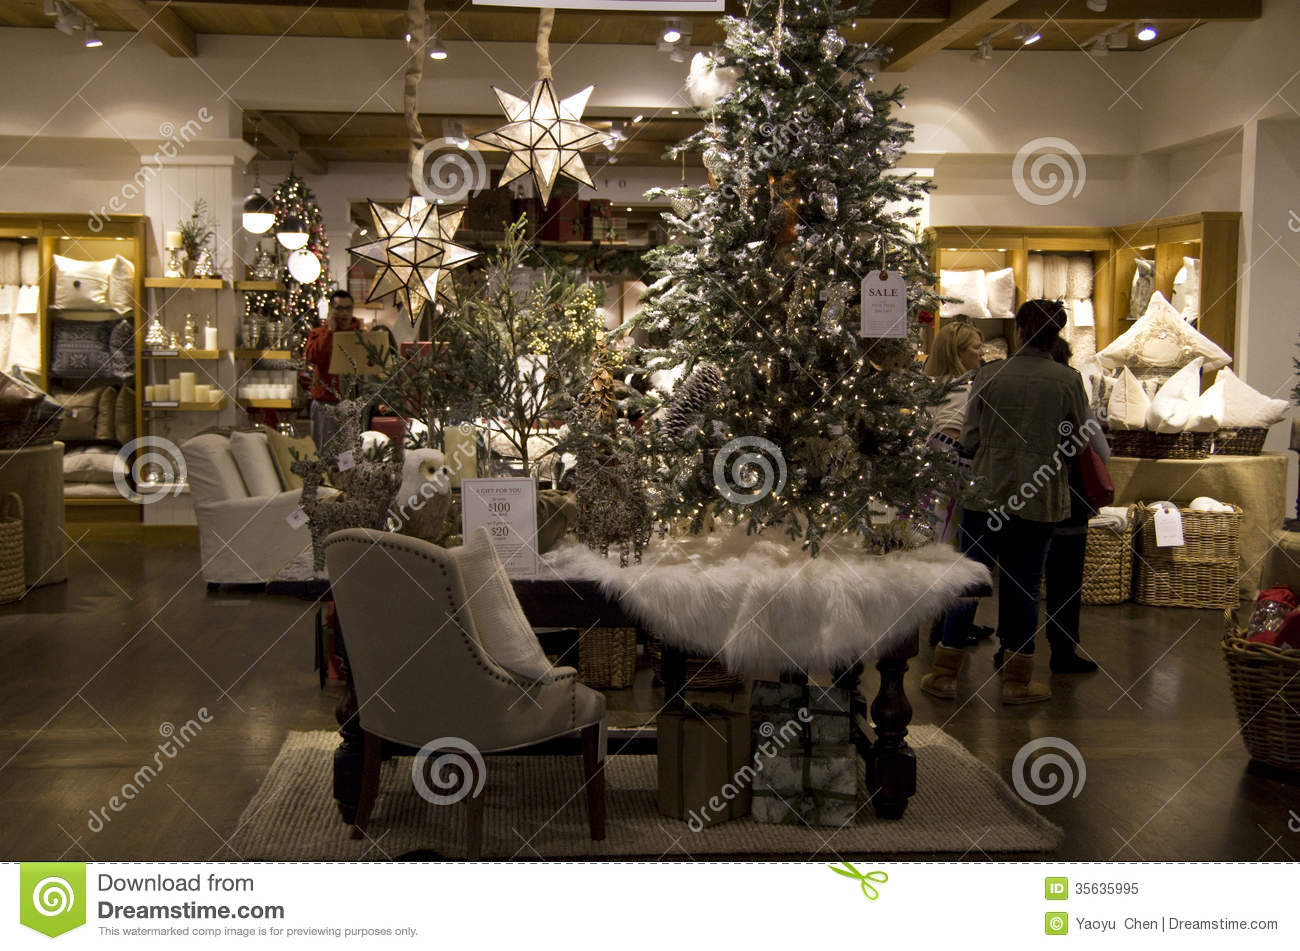 christmas trees home goods decor store - At Home Store Christmas Decorations